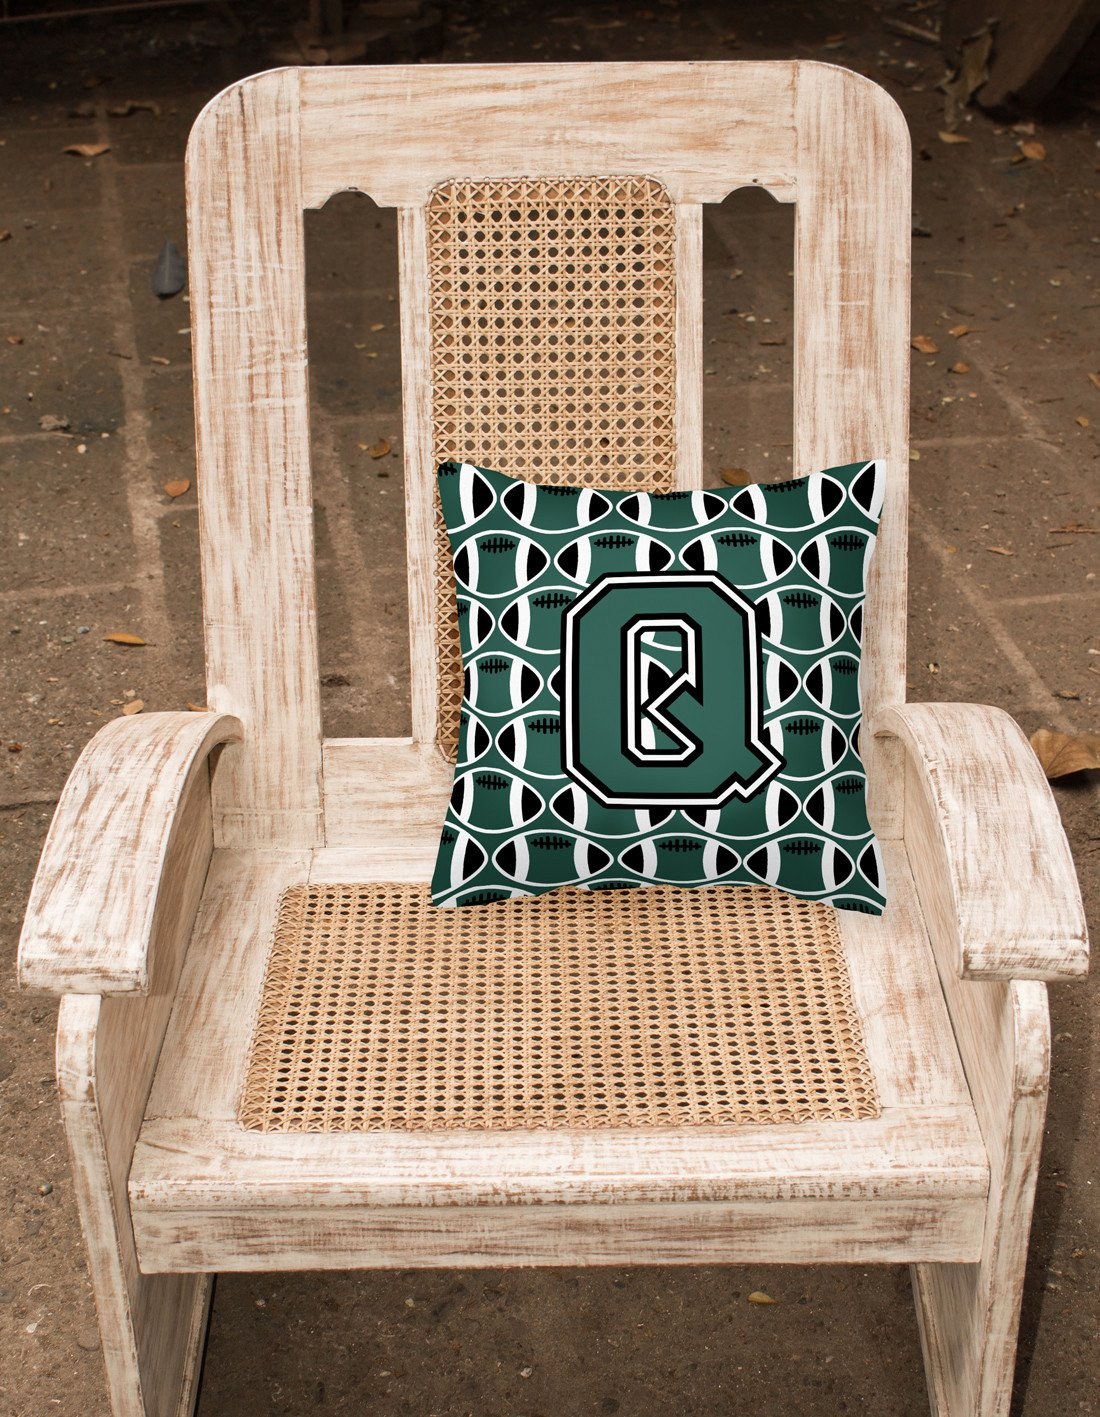 Letter Q Football Green and White Fabric Decorative Pillow CJ1071-QPW1414 by Caroline's Treasures